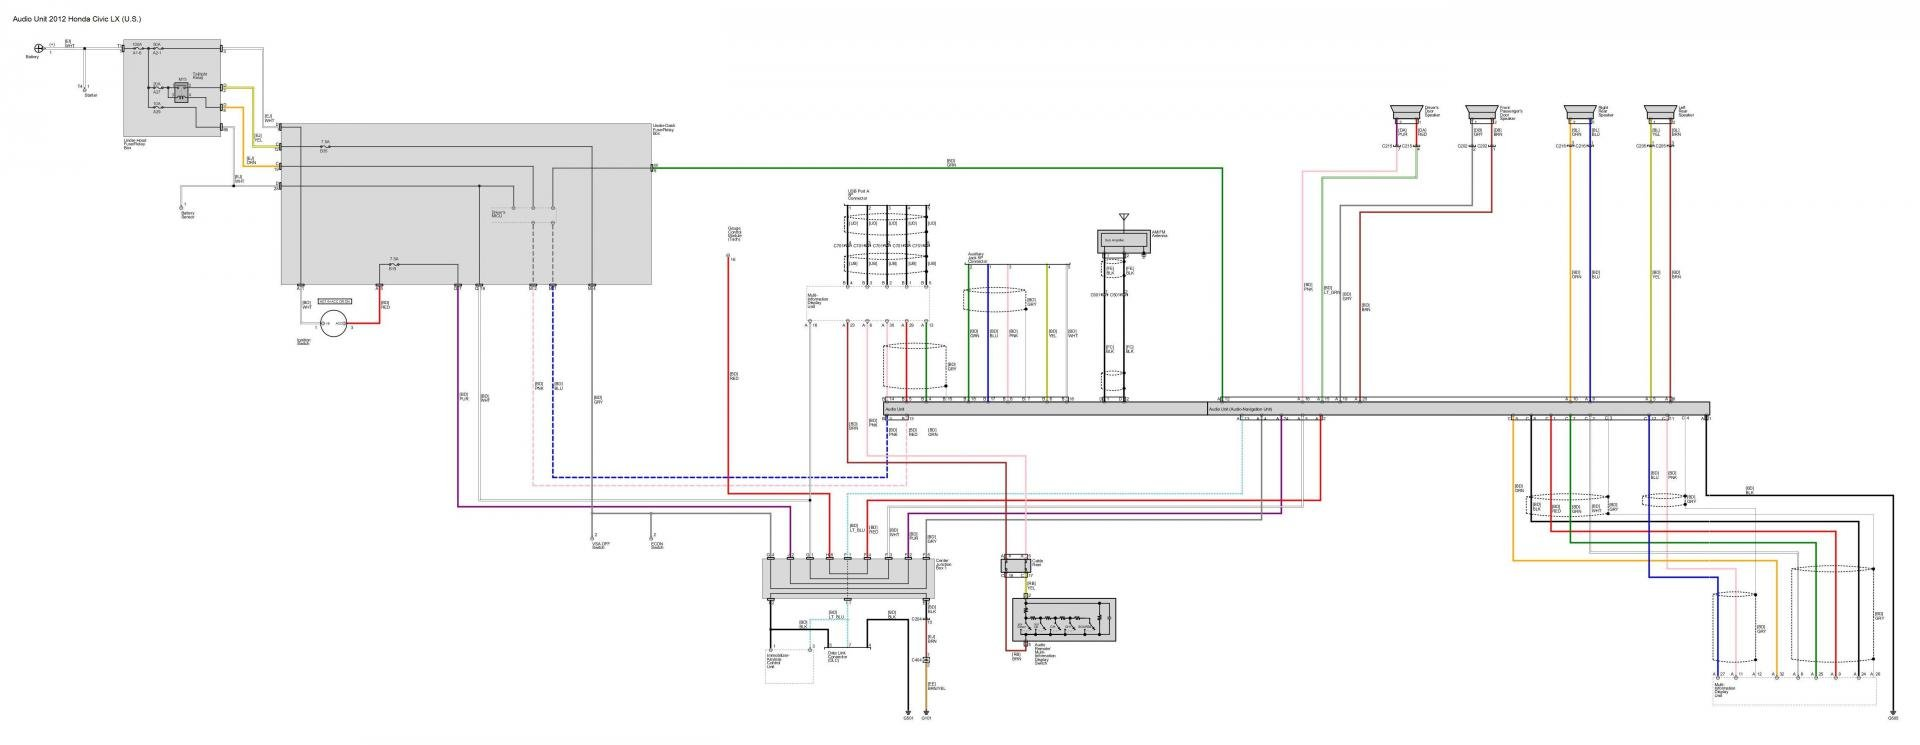 audio wiring diagrams  post  u0026 39 em if you got  u0026 39 em